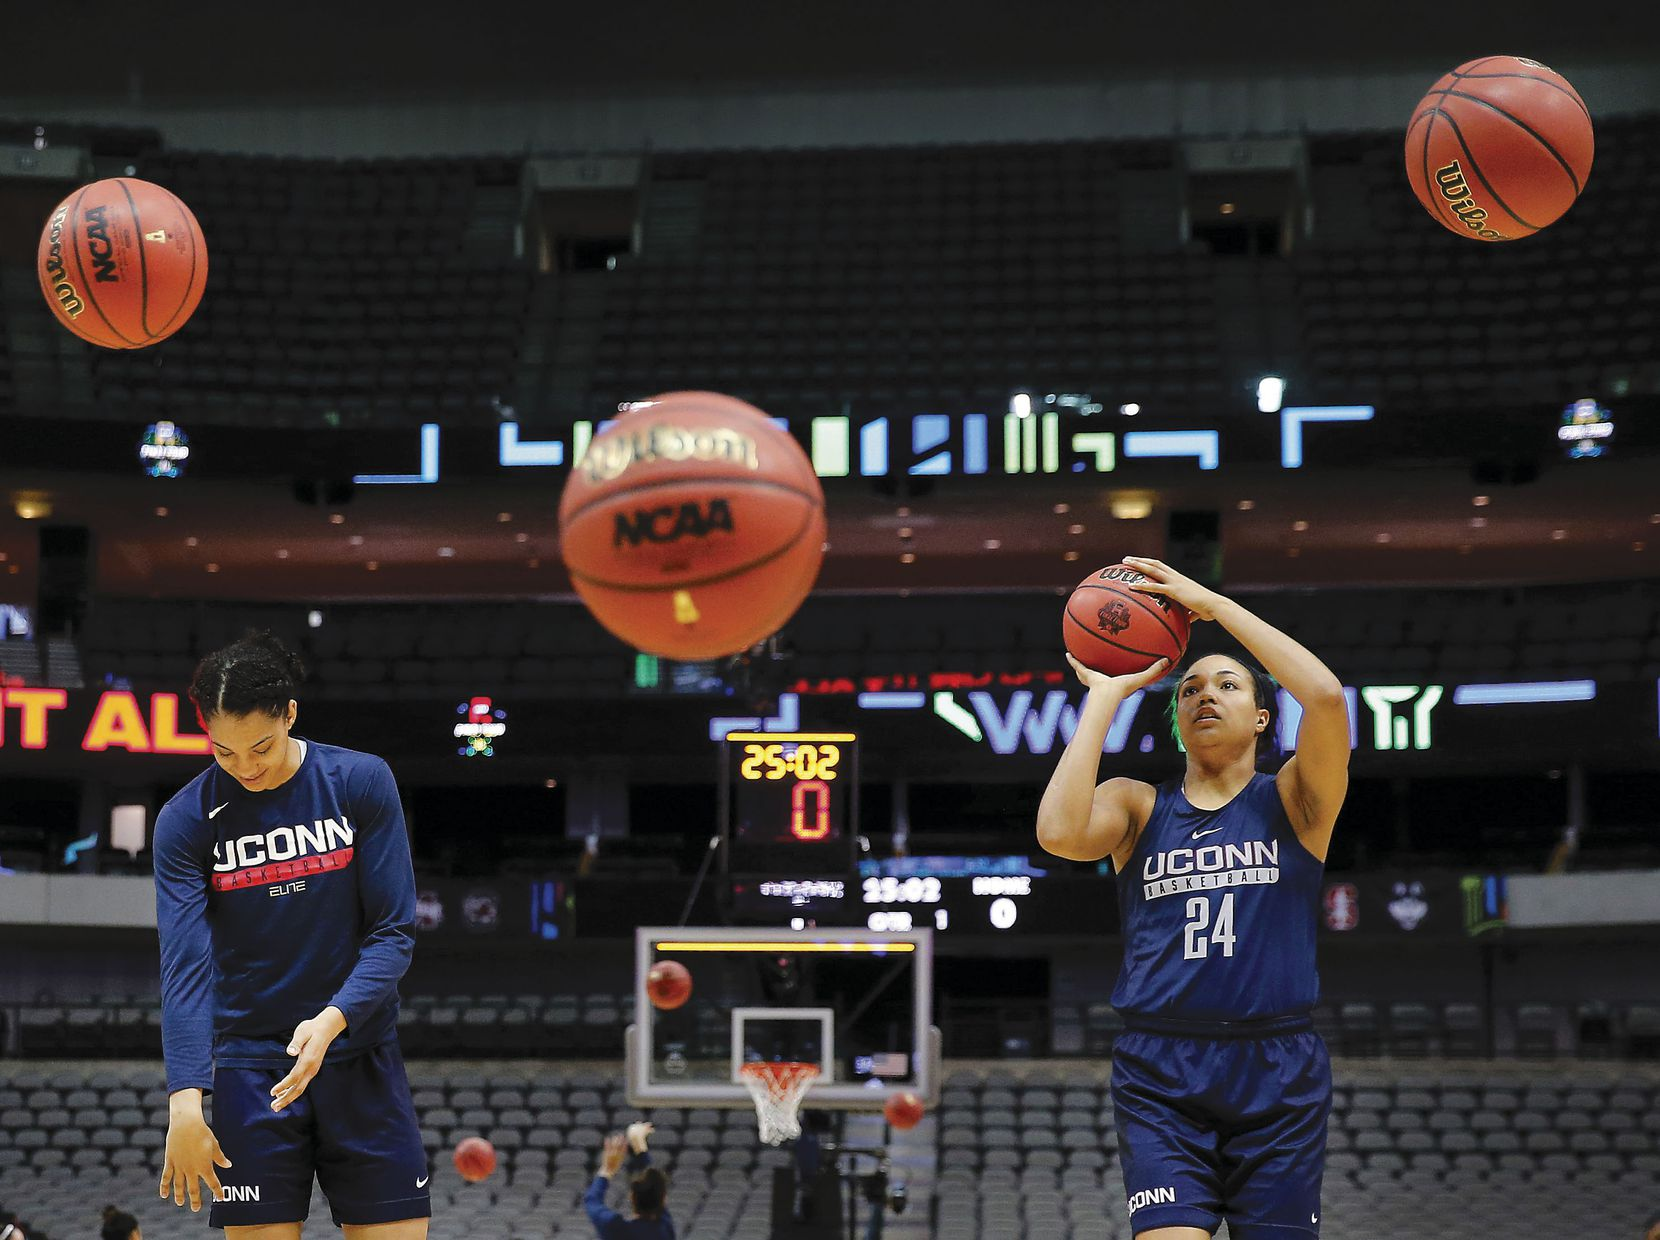 Connecticut Huskies guard/forward Napheesa Collier (right) and teammate Gabby Williams shoot baskets during practice for their NCAA Women's Final Four semifinal game at American Airlines Center in Dallas.